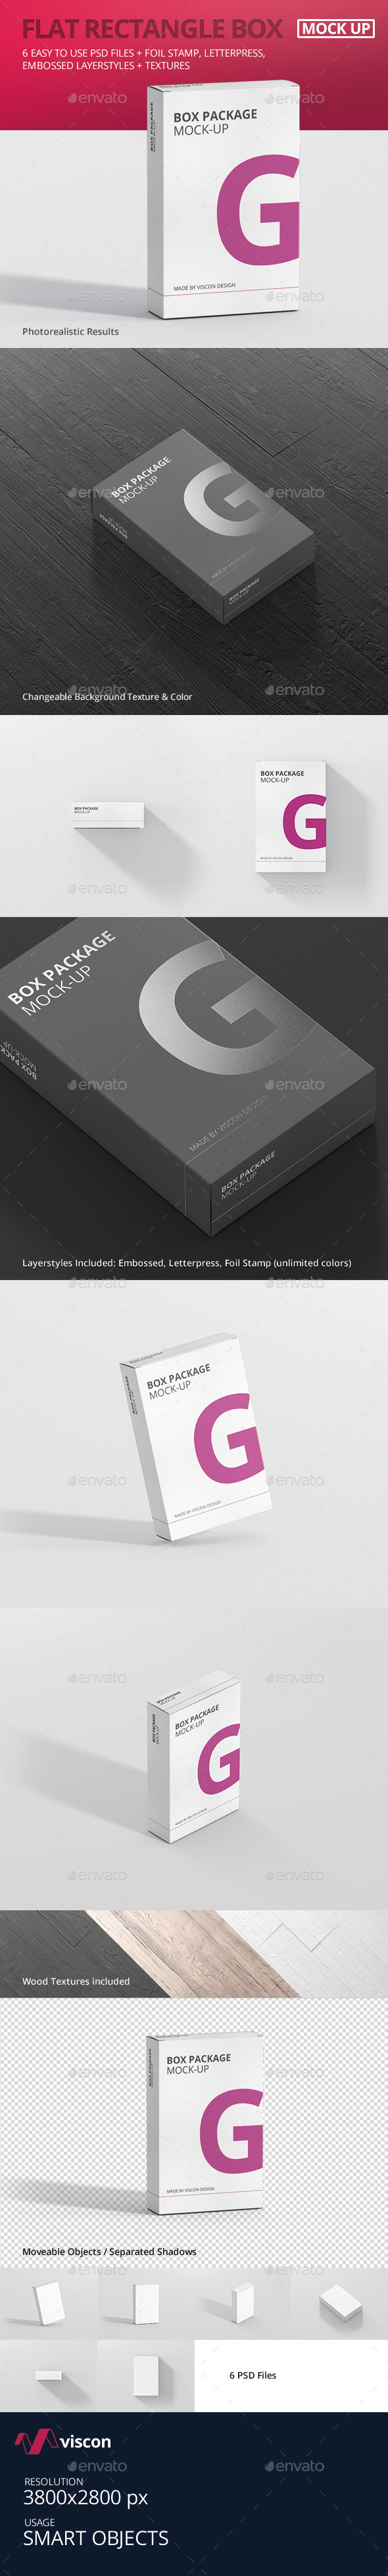 Package Box Mock-Up - Flat Rectangle